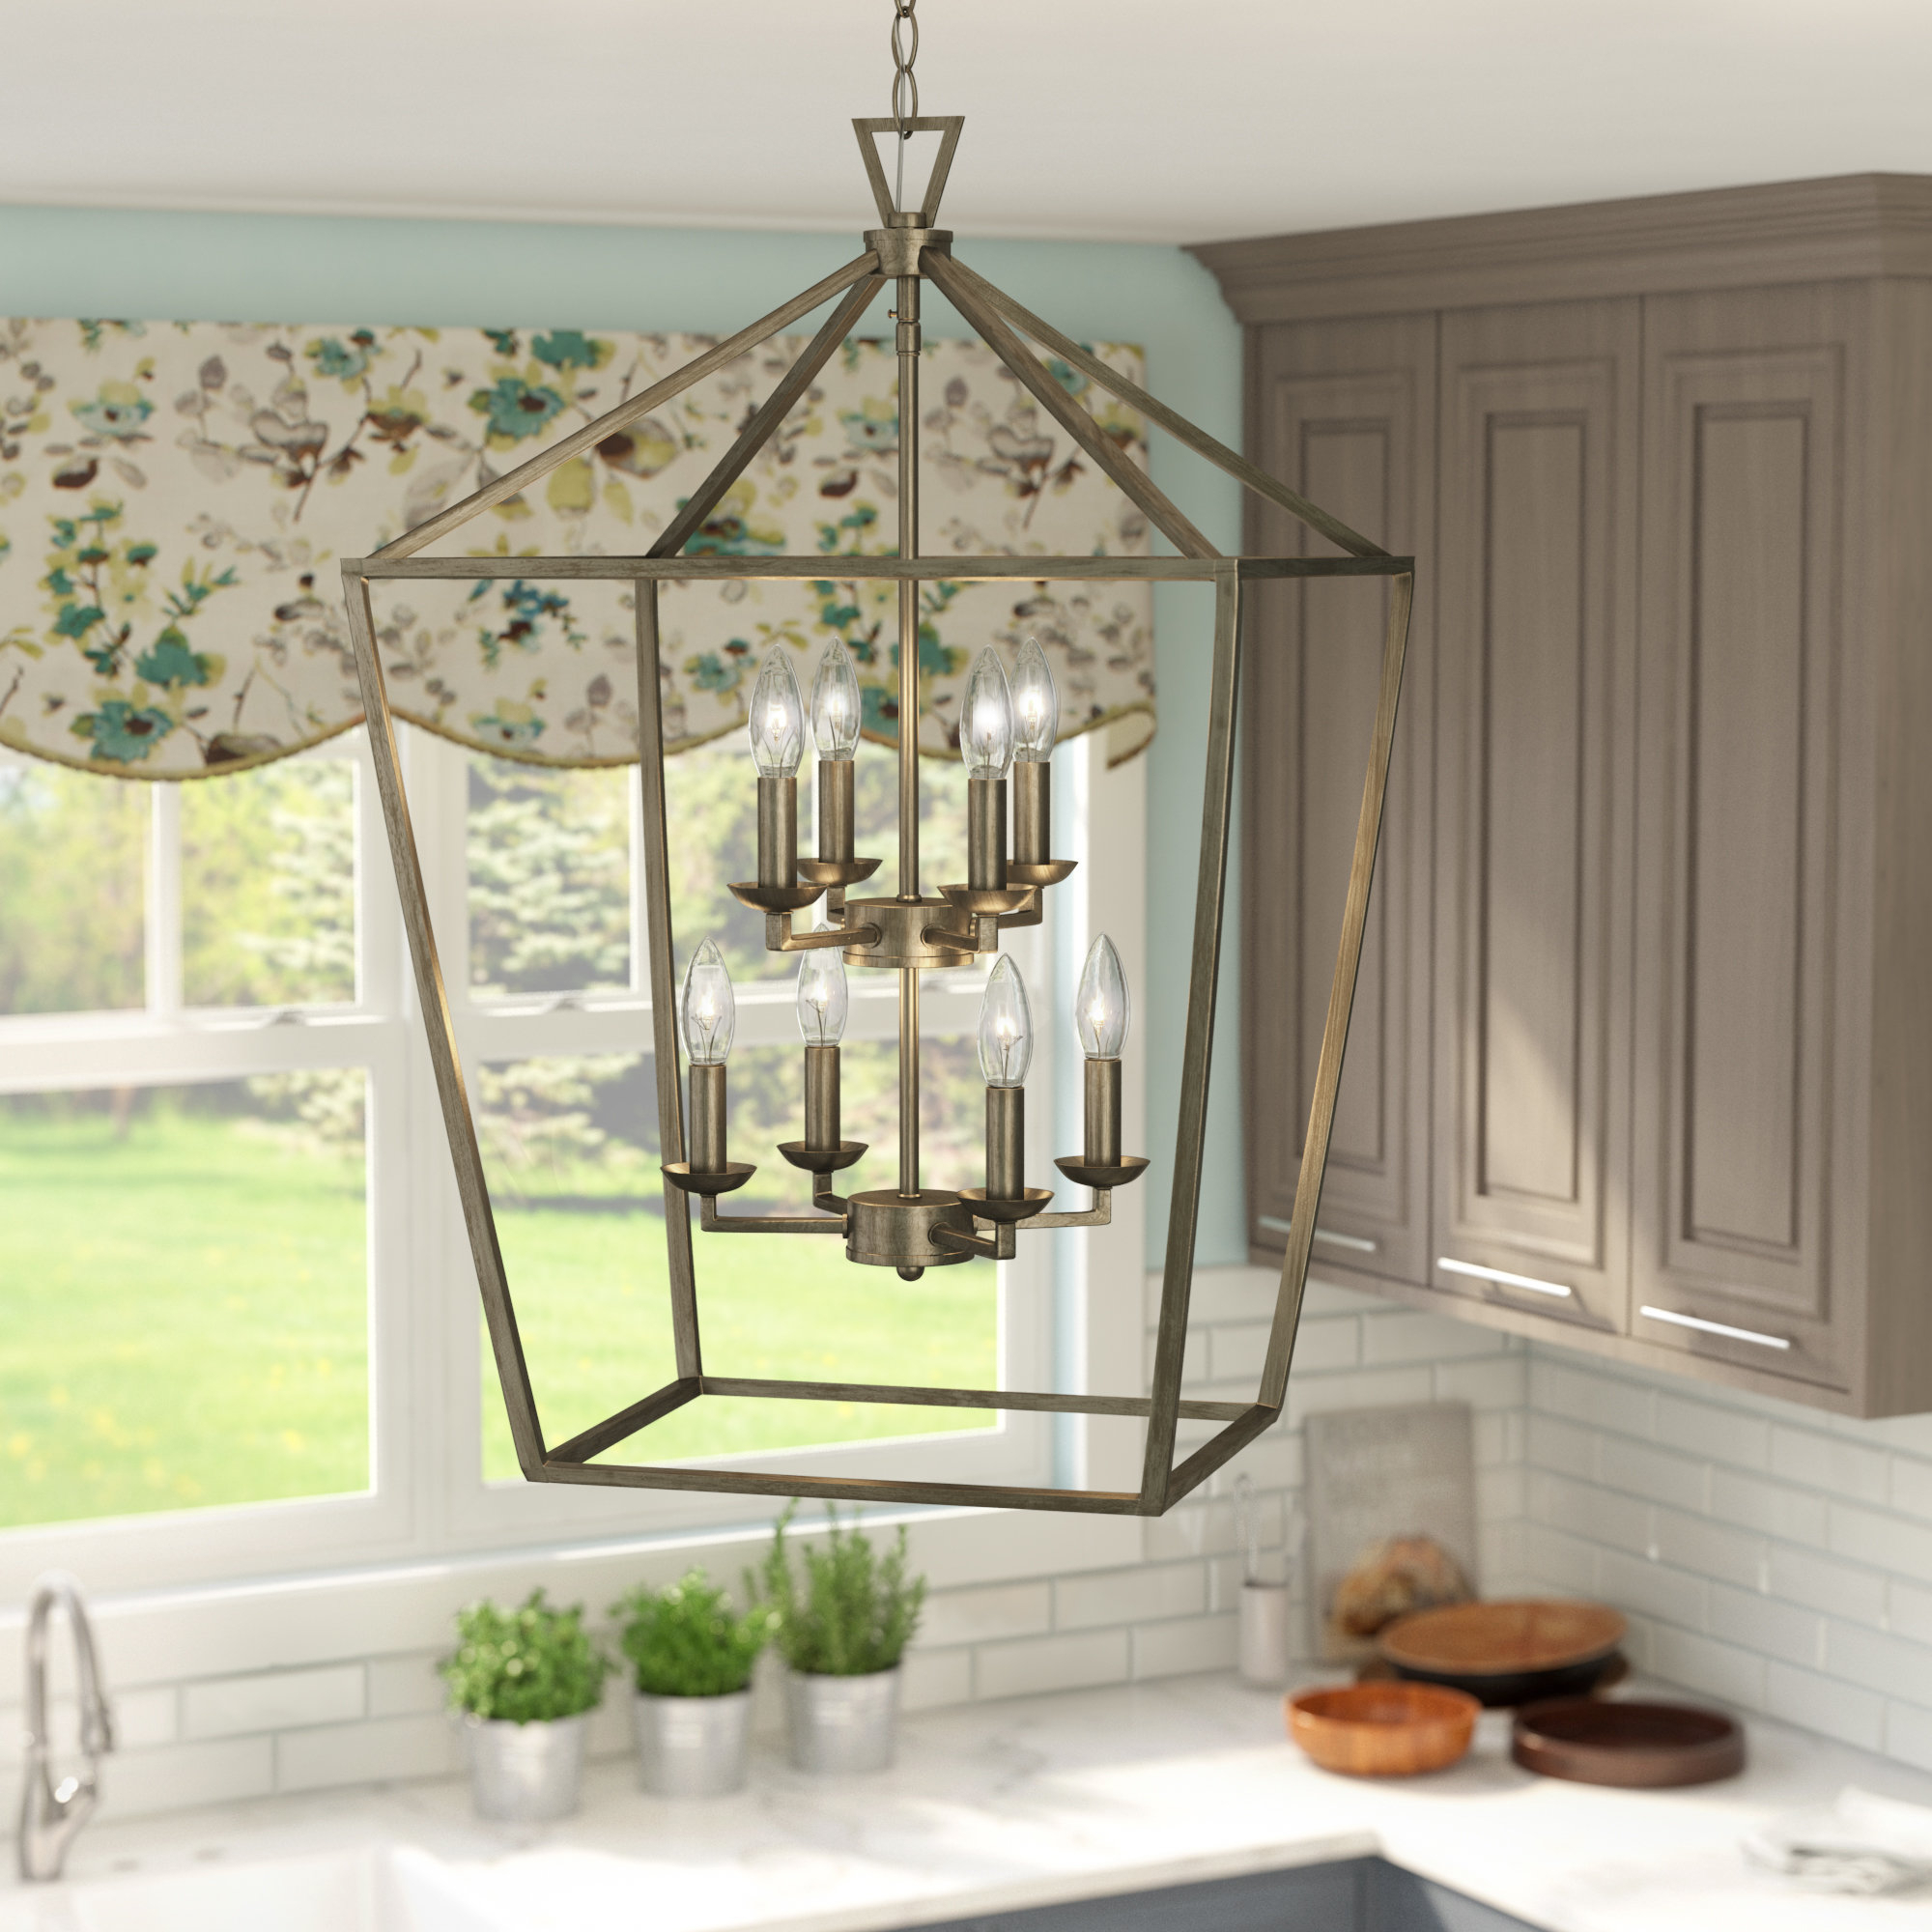 Small Lantern Pendant Light You'll Love In 2019 | Wayfair Throughout Armande 4 Light Lantern Drum Pendants (View 21 of 30)